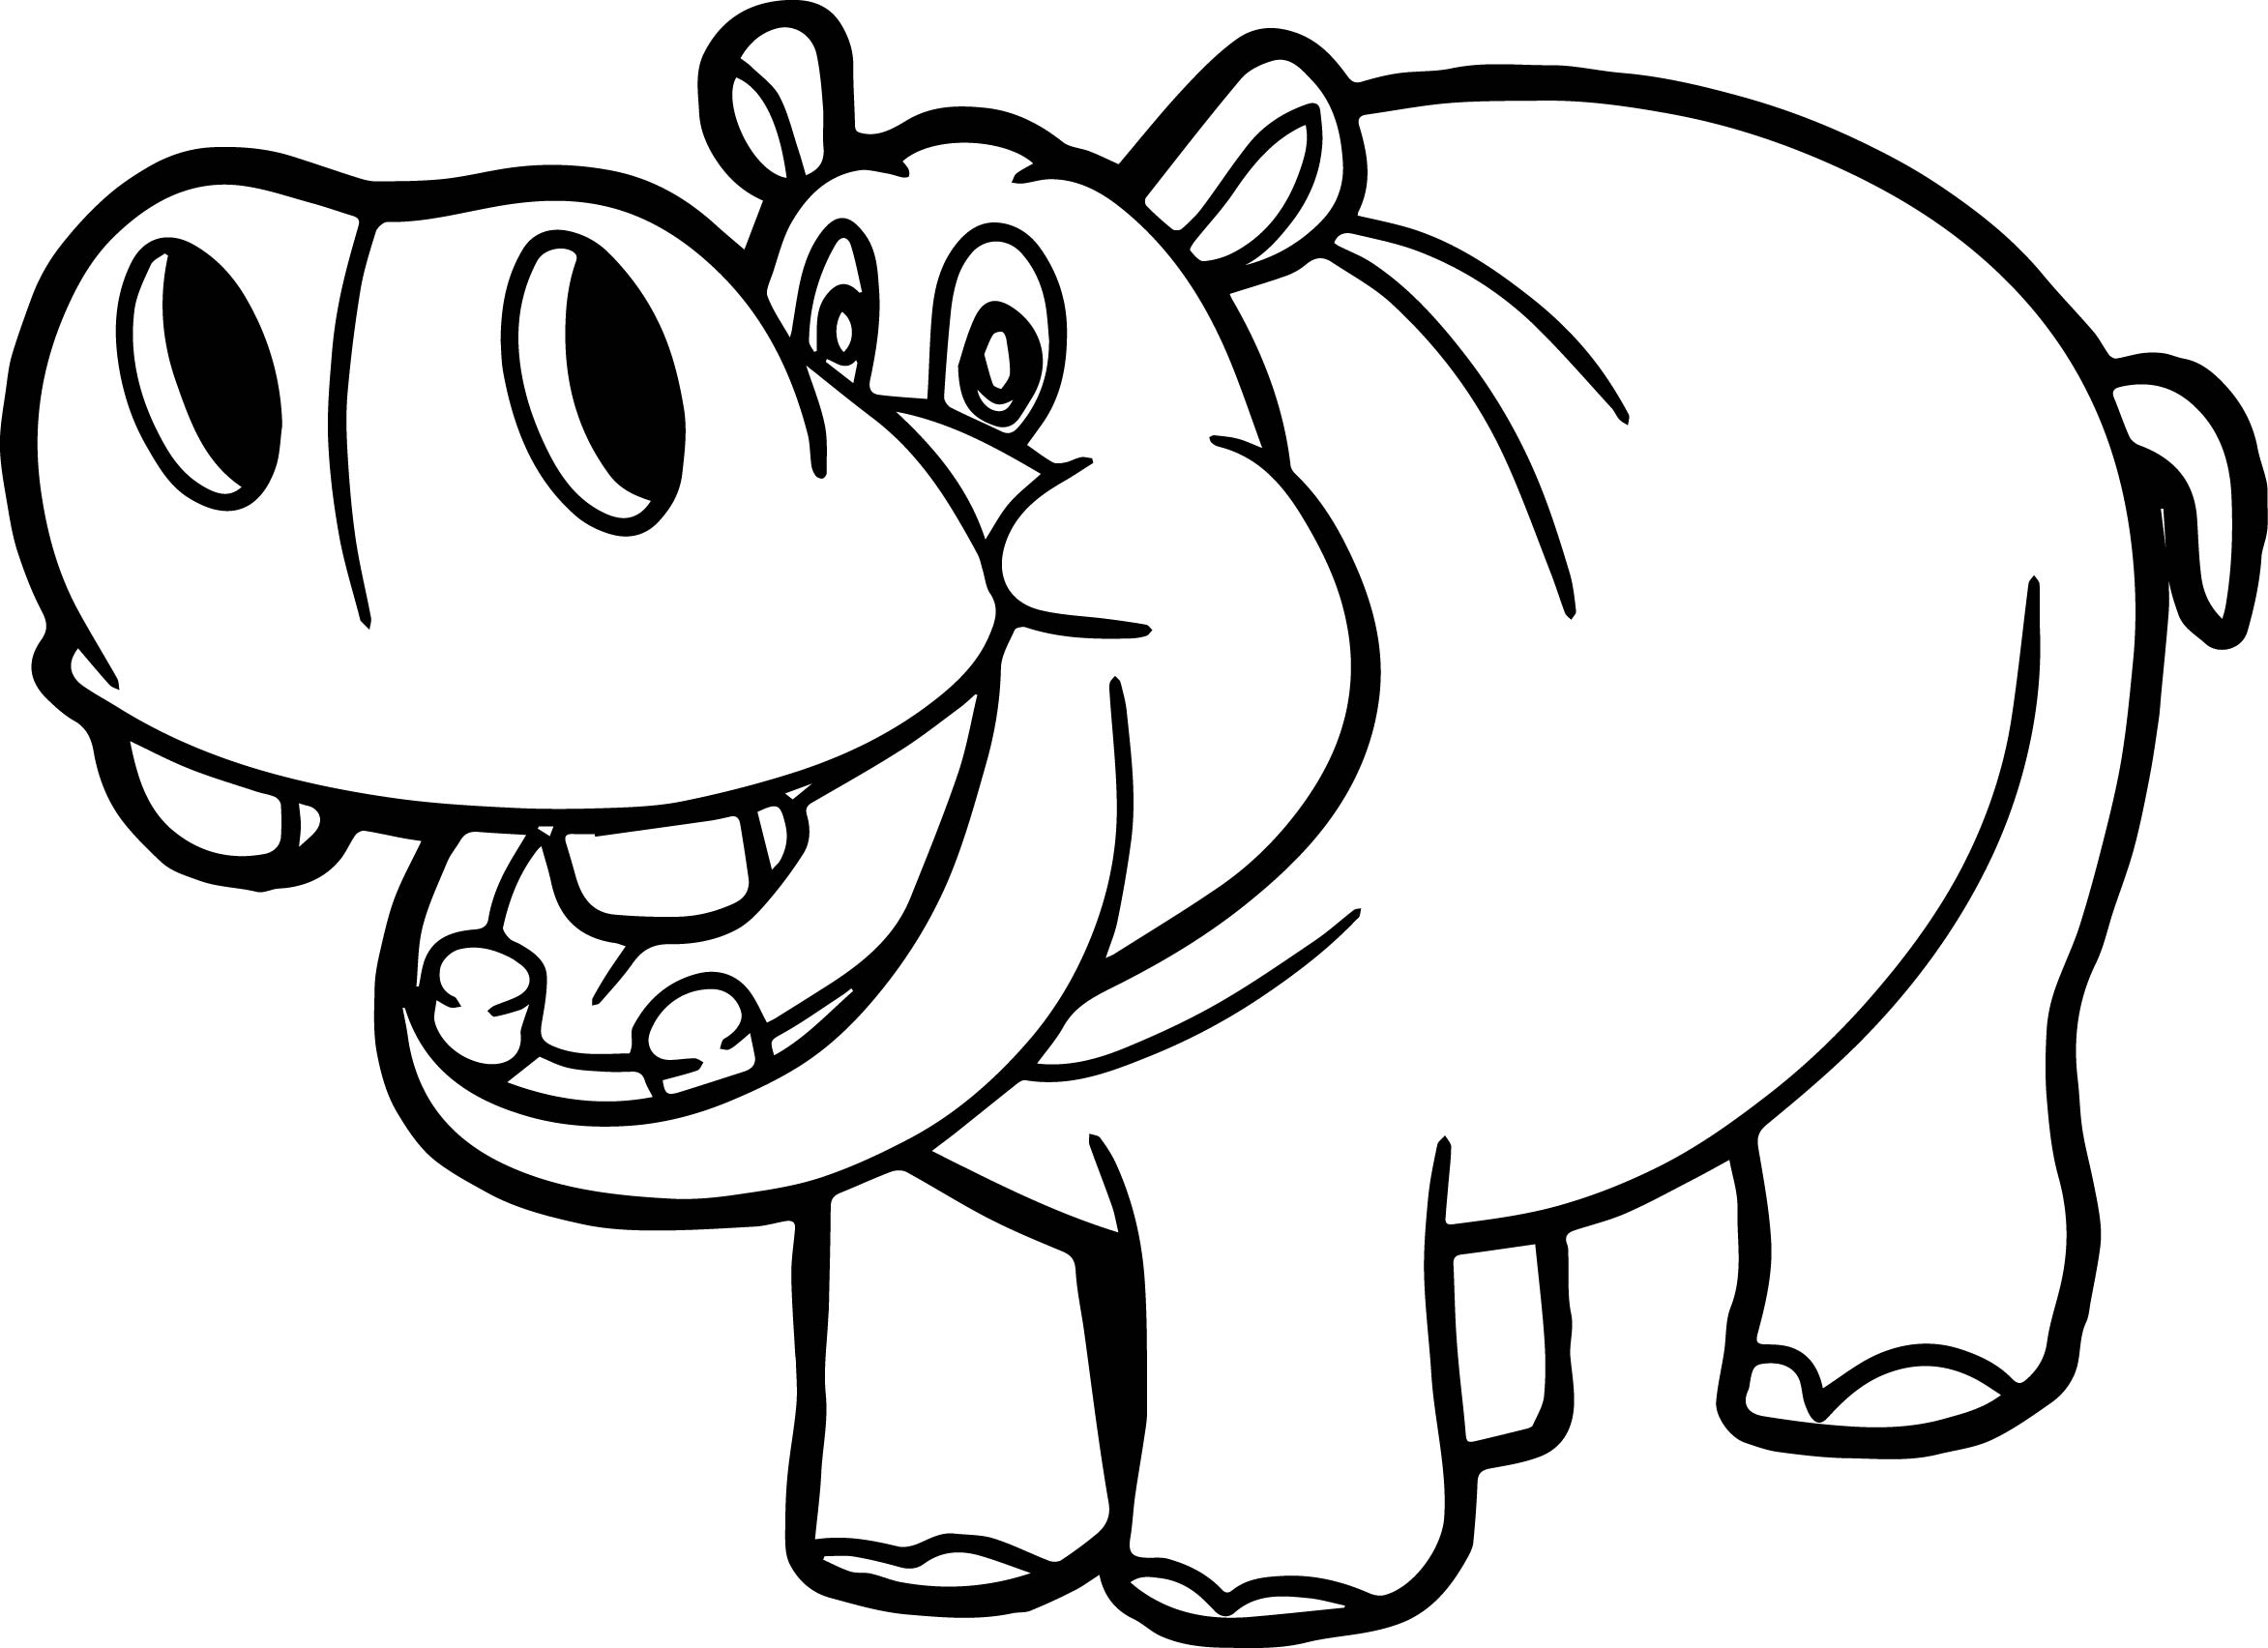 Hippo Outline Drawing at GetDrawings | Free download